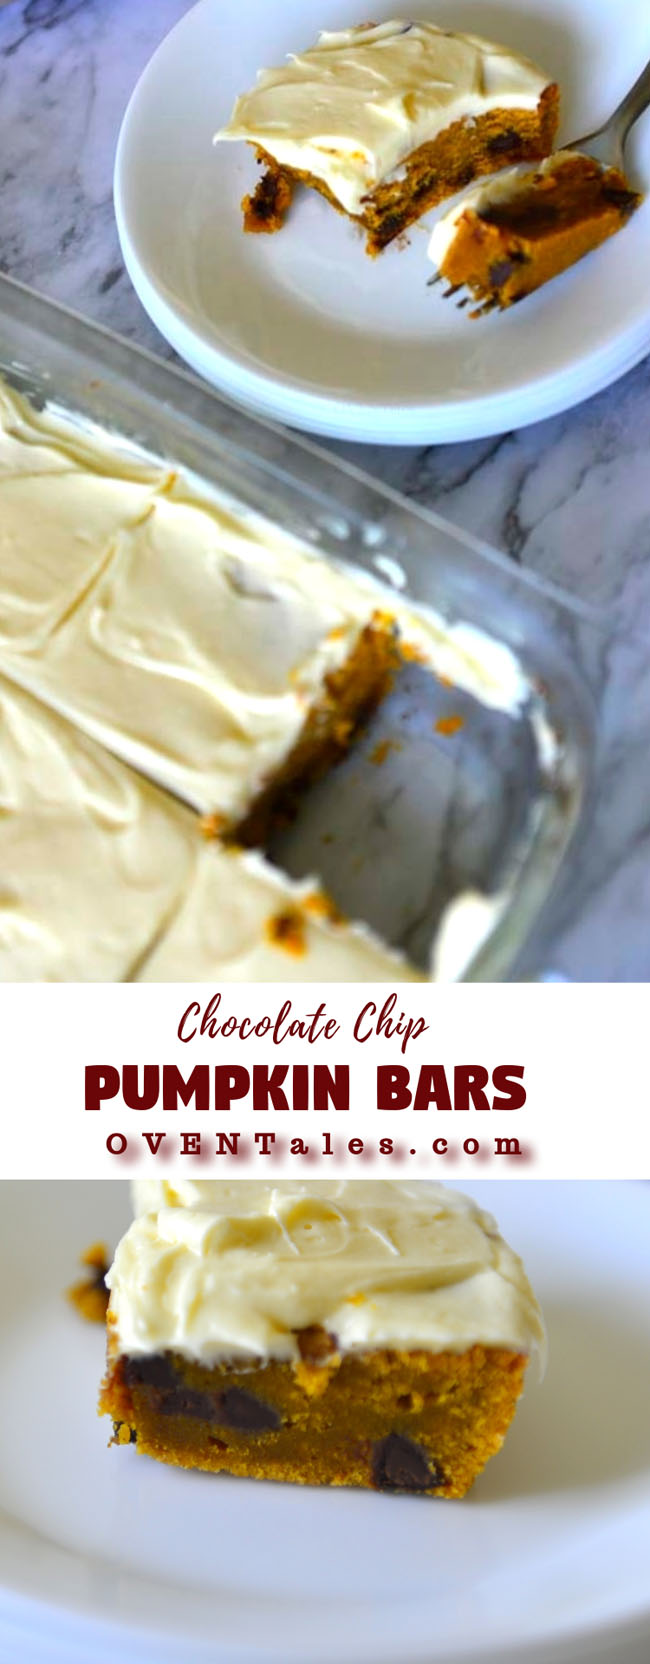 Chocolate Chip Pumpkin Bar